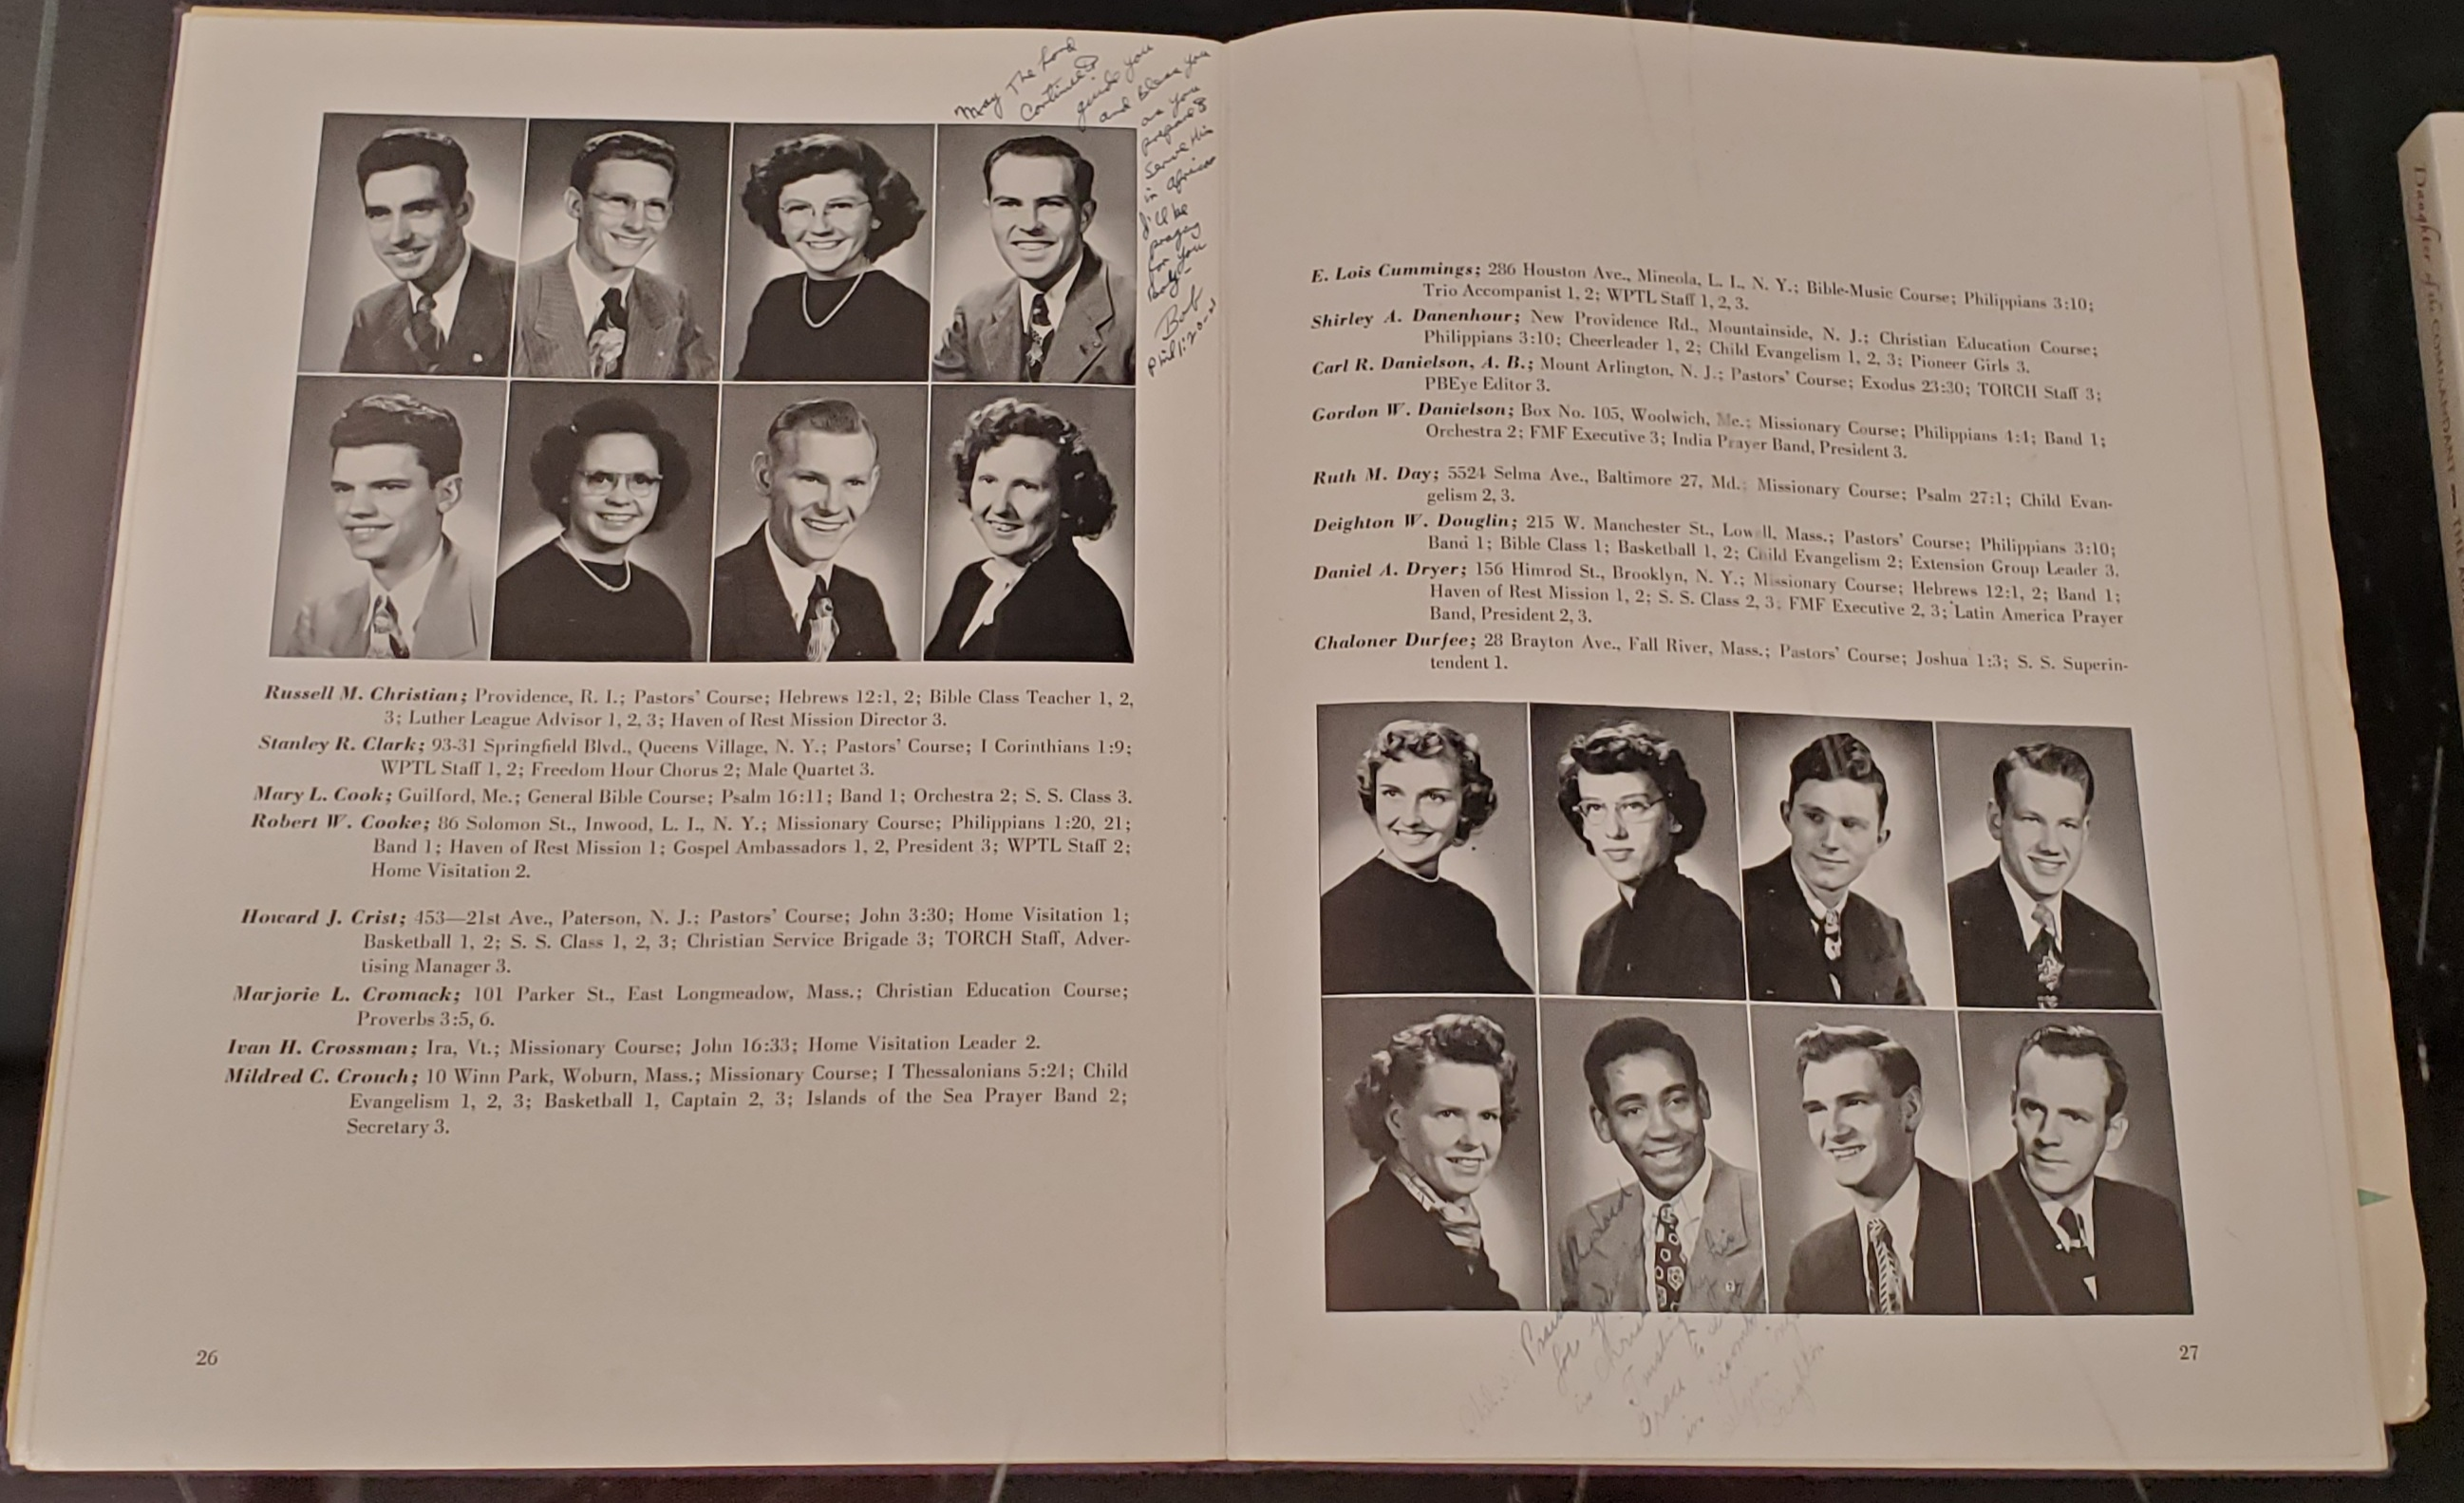 Pages from the 1950 Barrington Yearbook titled Torch. It features a photo of Deighton Douglin in the bottom row as well as a small note that he wrote to the former owner of the yearbook.